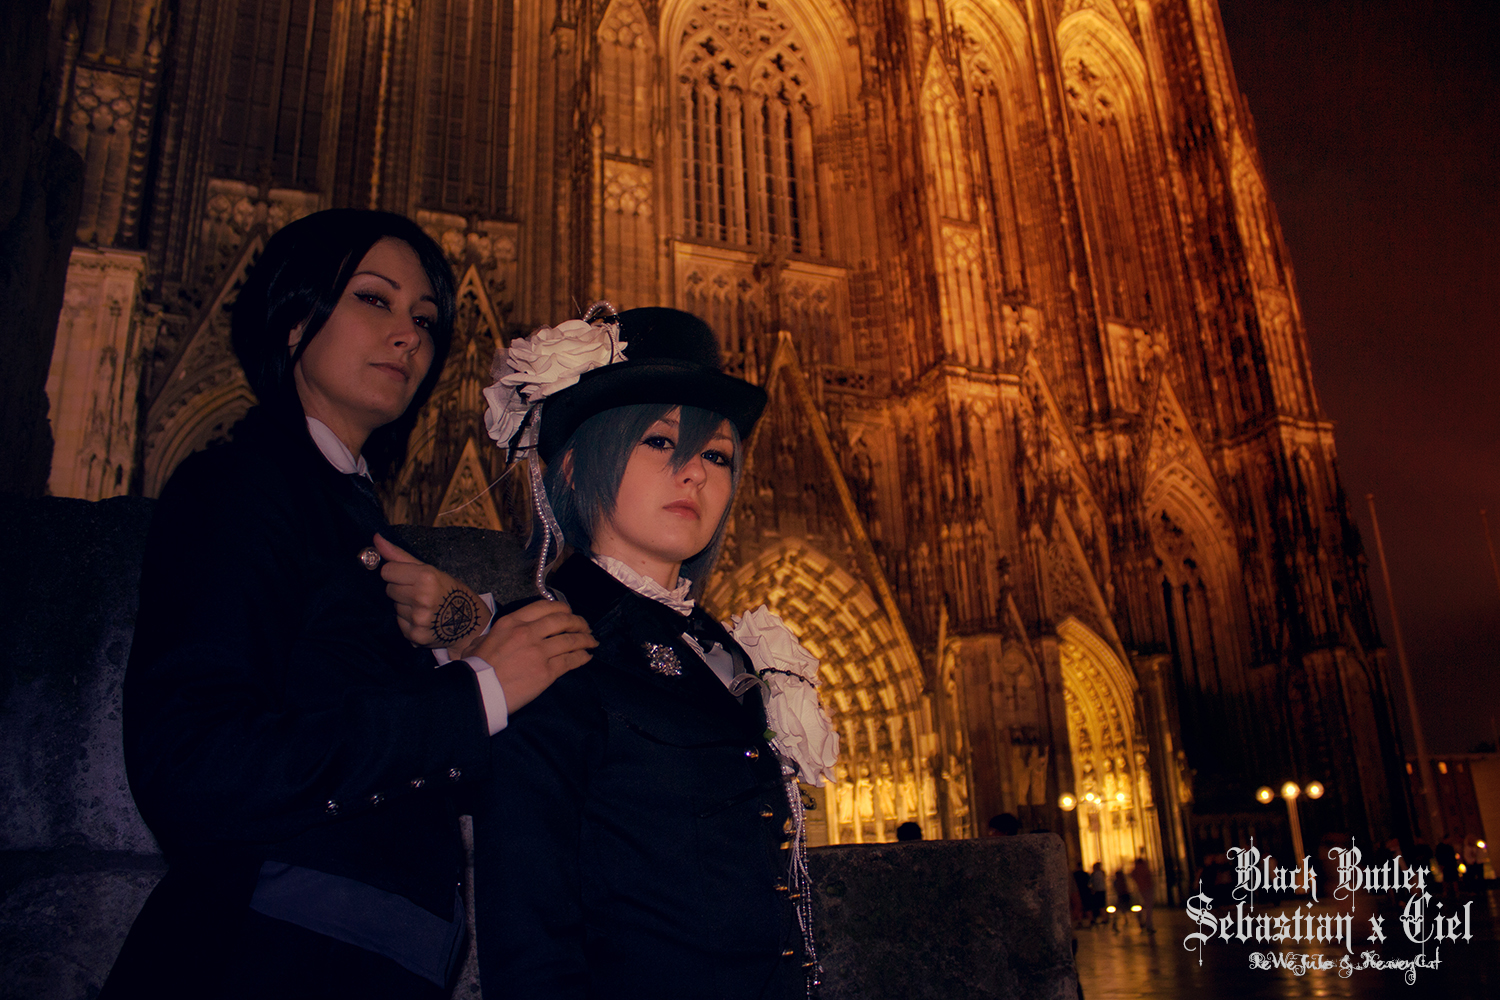 Black Butler: At Night by HeavenCatTheRealOne